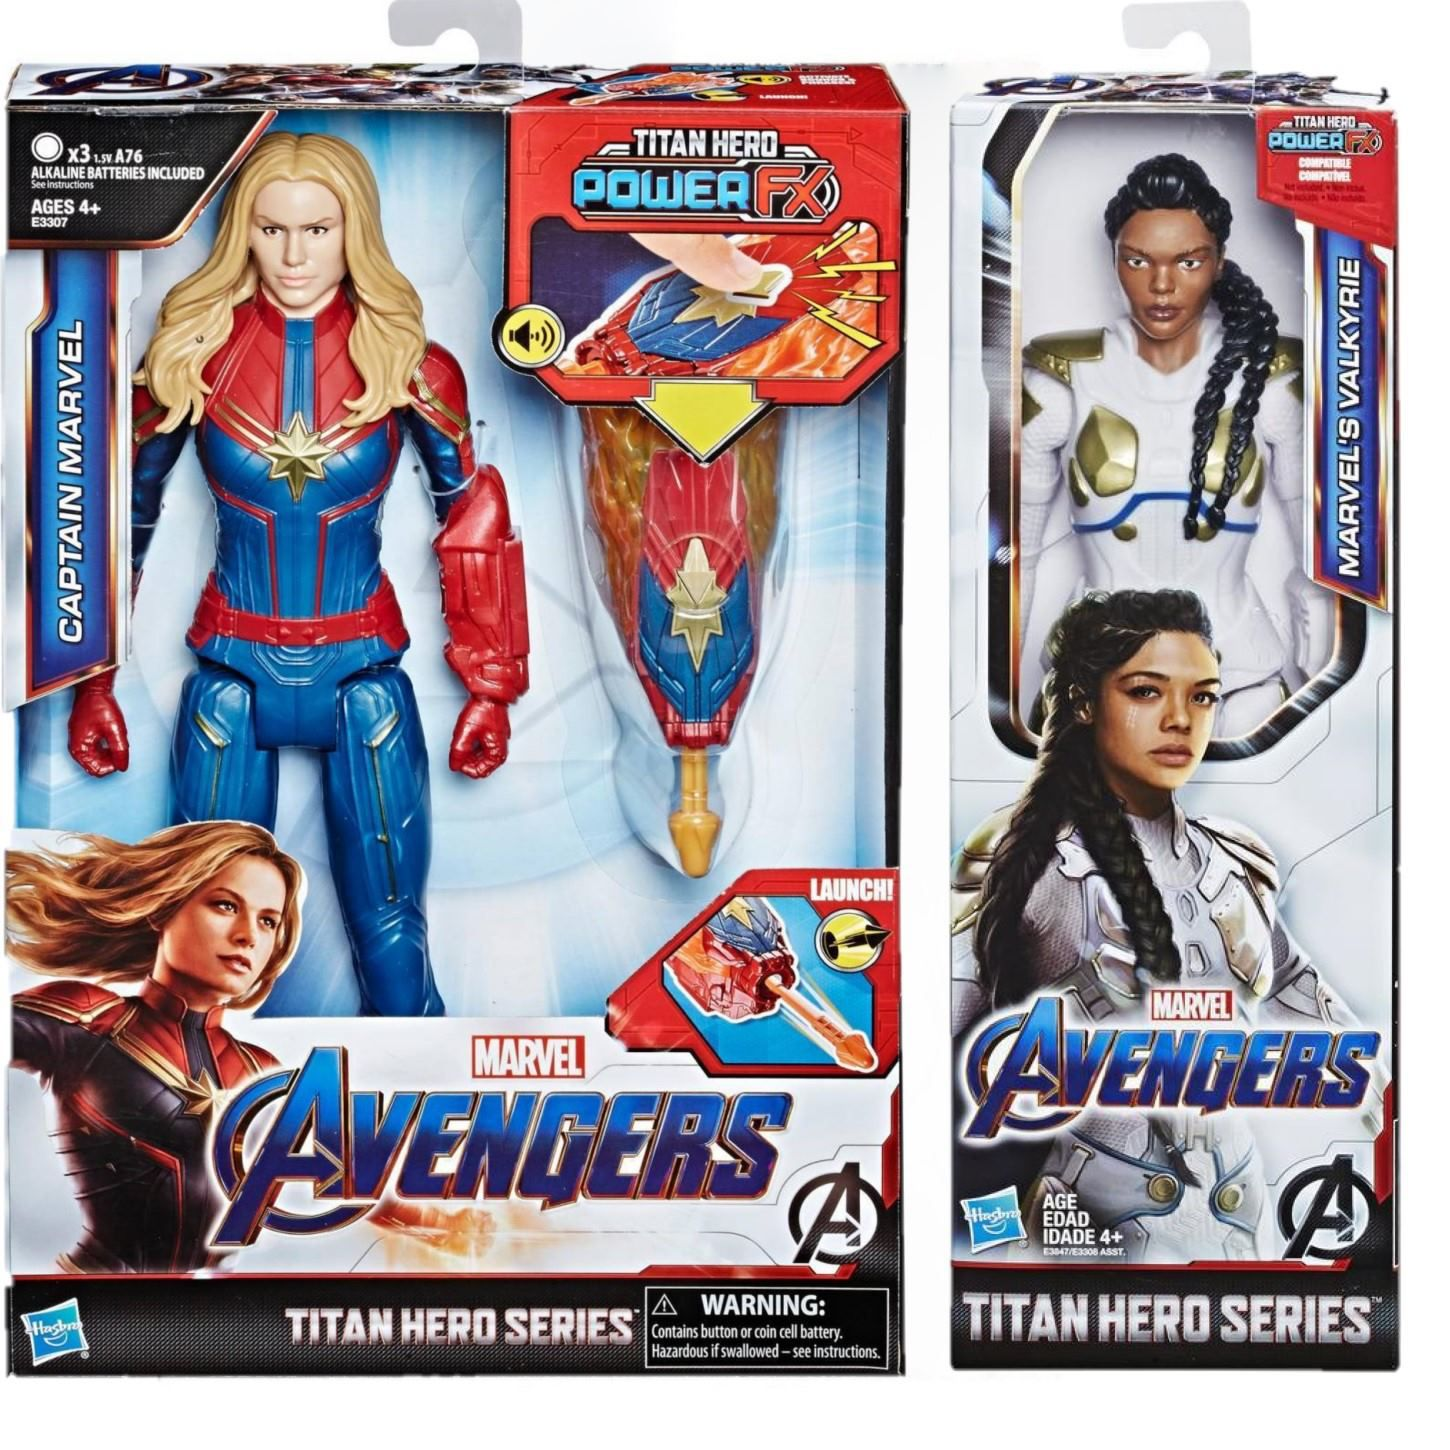 Pack Vingadores Ultimato Boneco Capitã Marvel com Dispositivo Power Fx E3307  + Boneco Valquiria E3847 - Hasbro